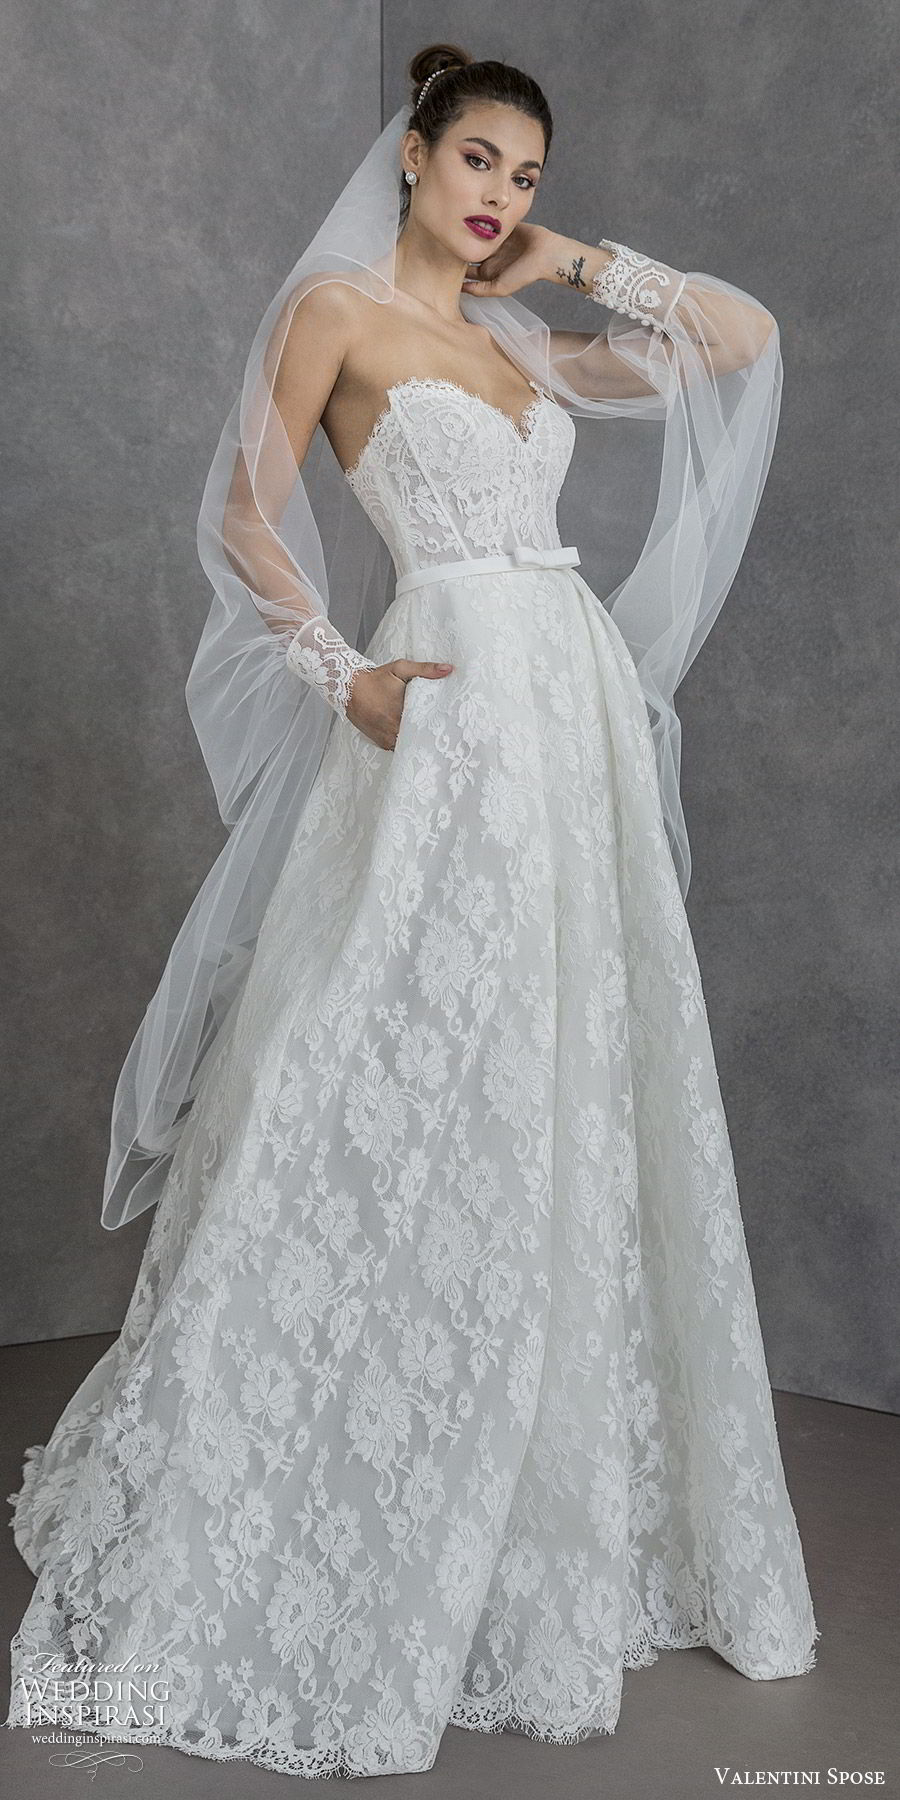 valentini spose spring 2020 bridal strapless sweetheart fully lace a line ball gown wedding dress (4) sheer long sleeve jacket modern romantic sweep train mv